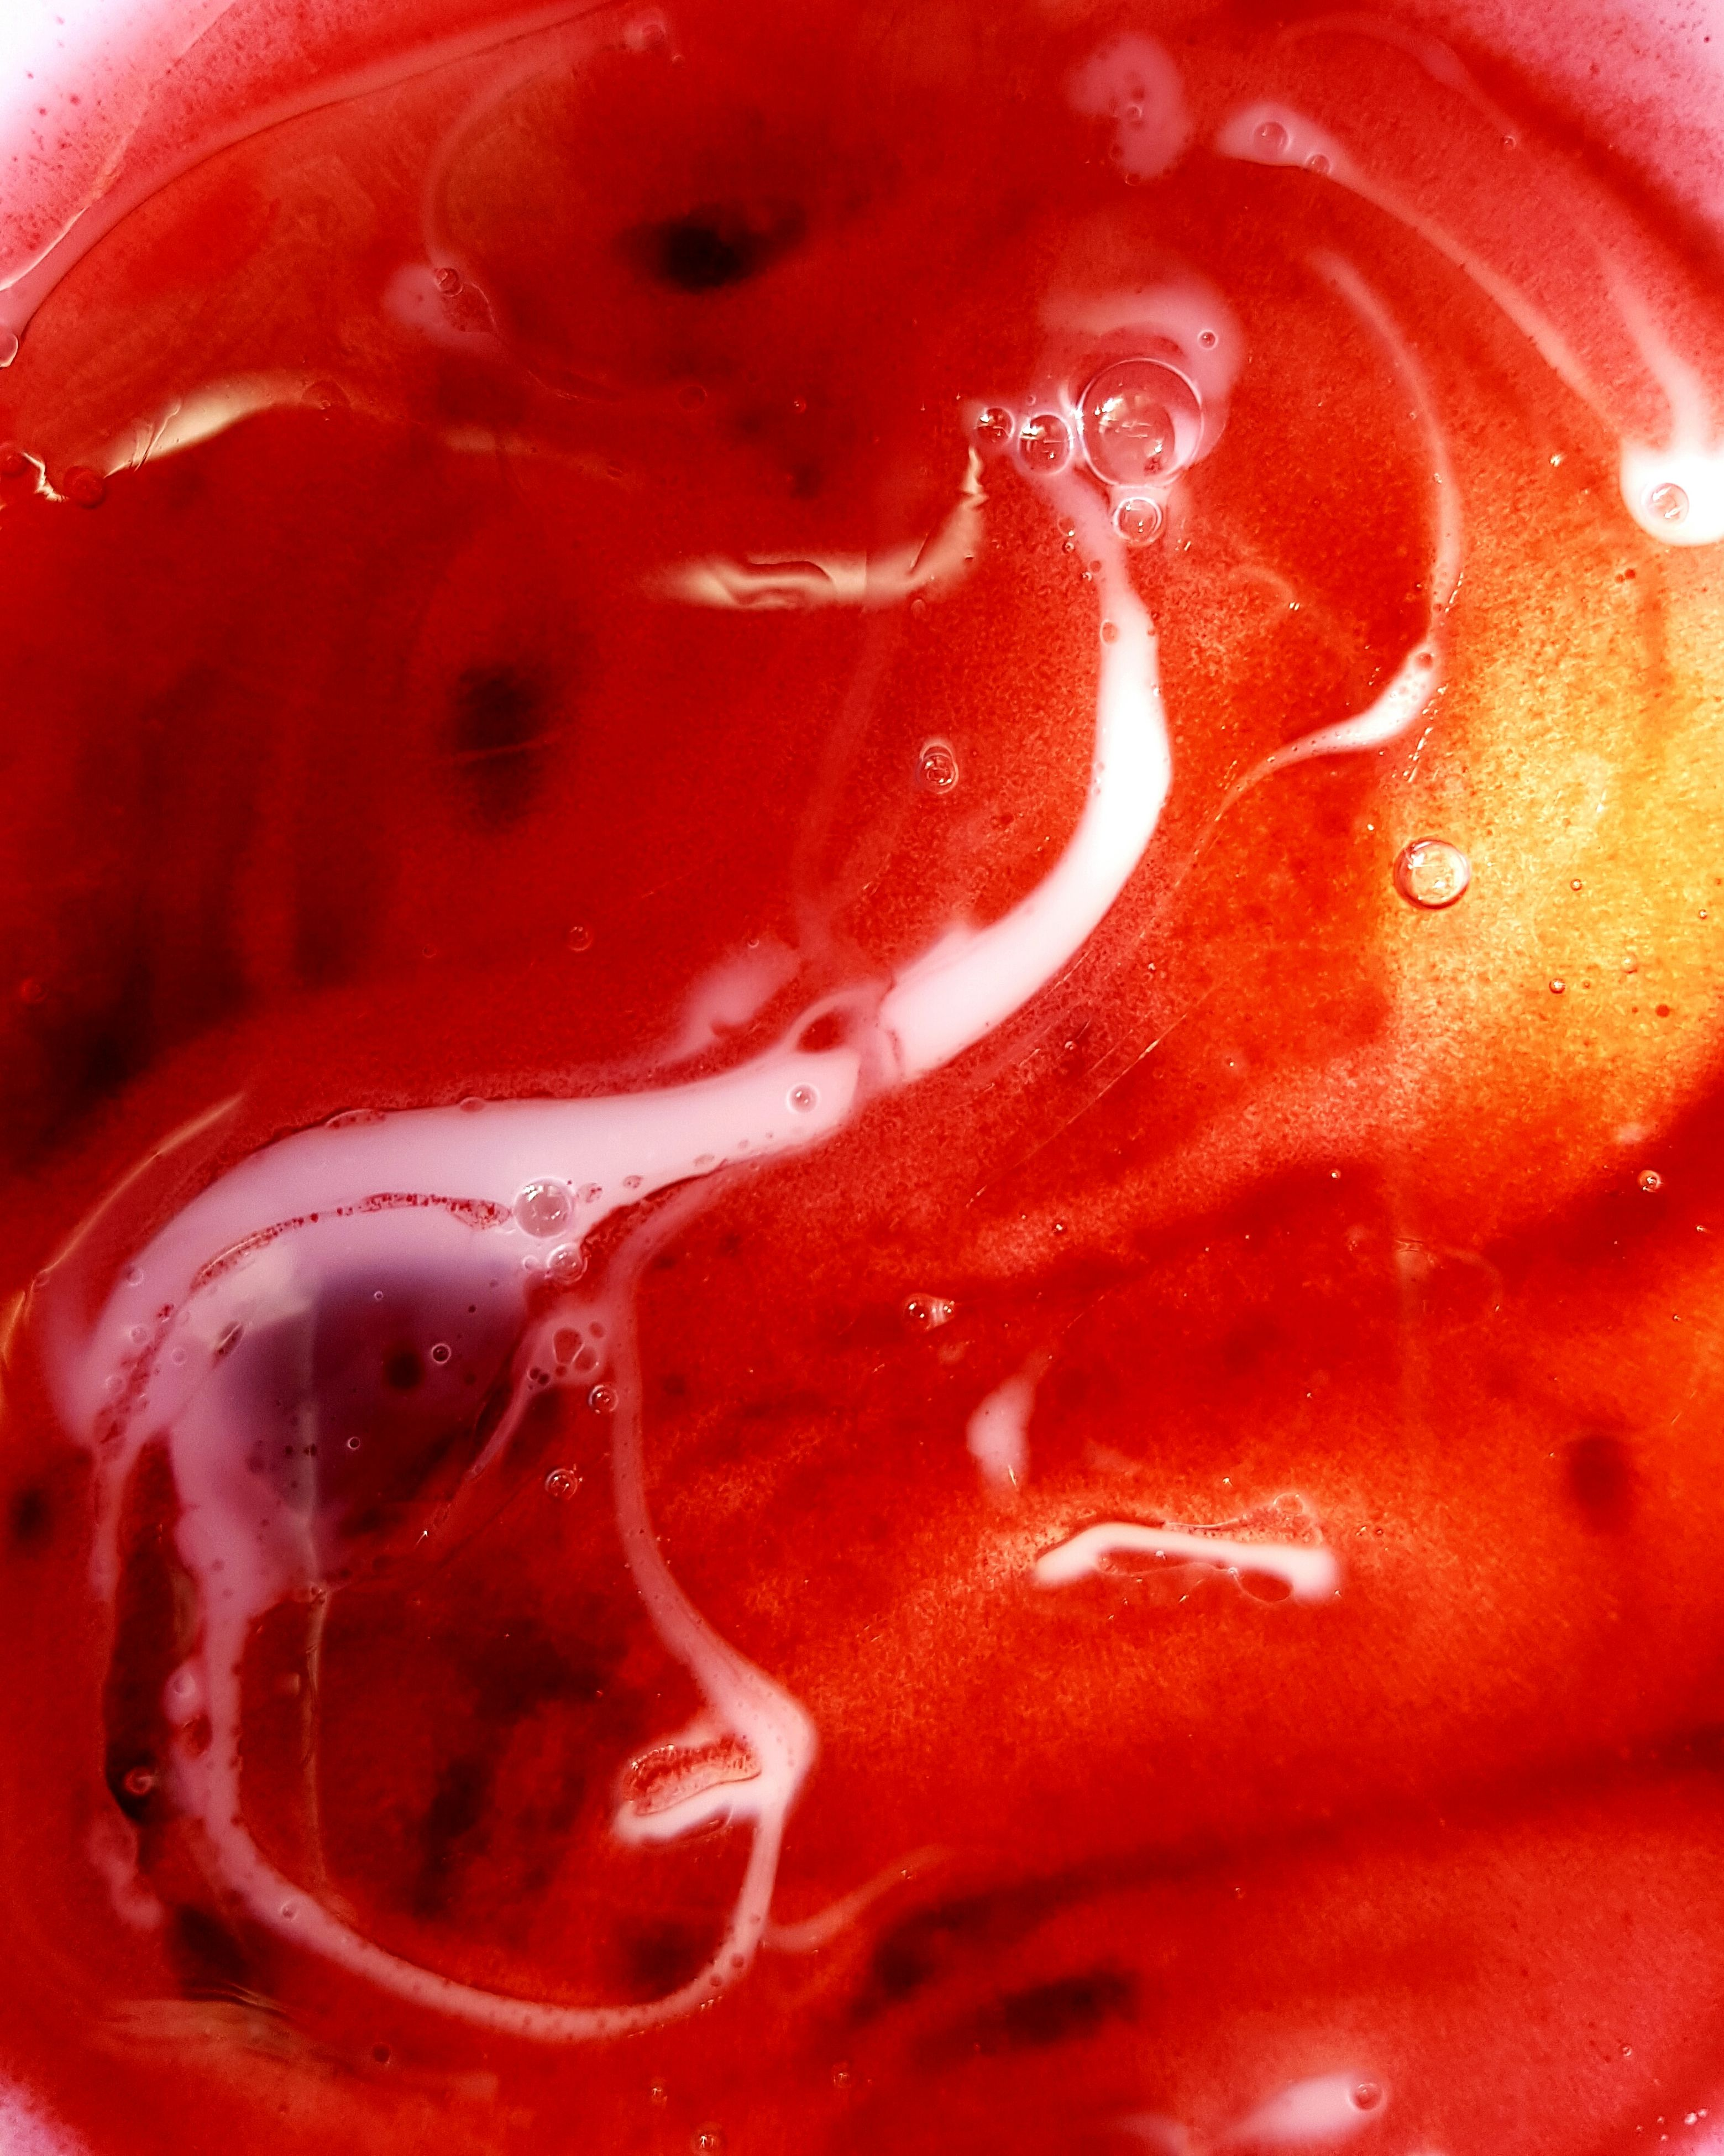 red, close-up, water, full frame, freshness, indoors, backgrounds, food and drink, drop, wet, still life, refreshment, detail, drink, no people, orange color, liquid, vibrant color, transparent, glass - material